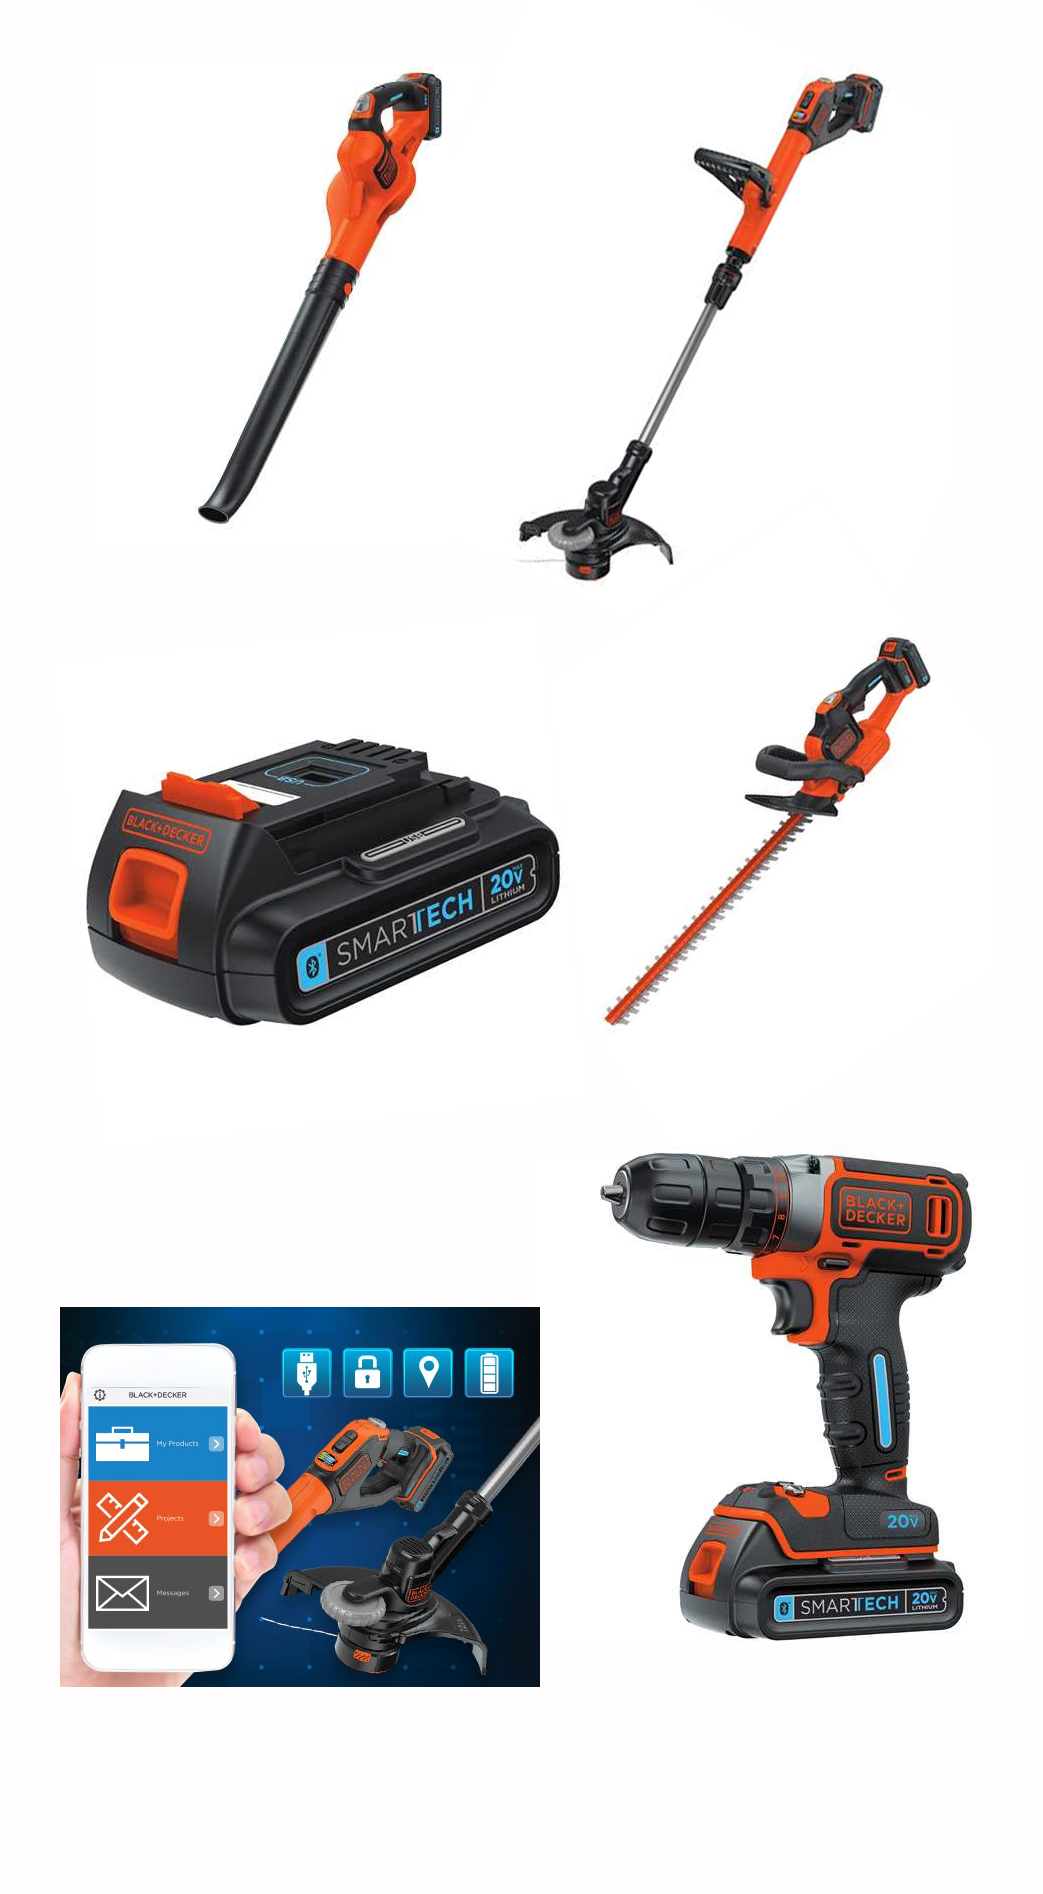 How To Use Black And Decker Drill 20v